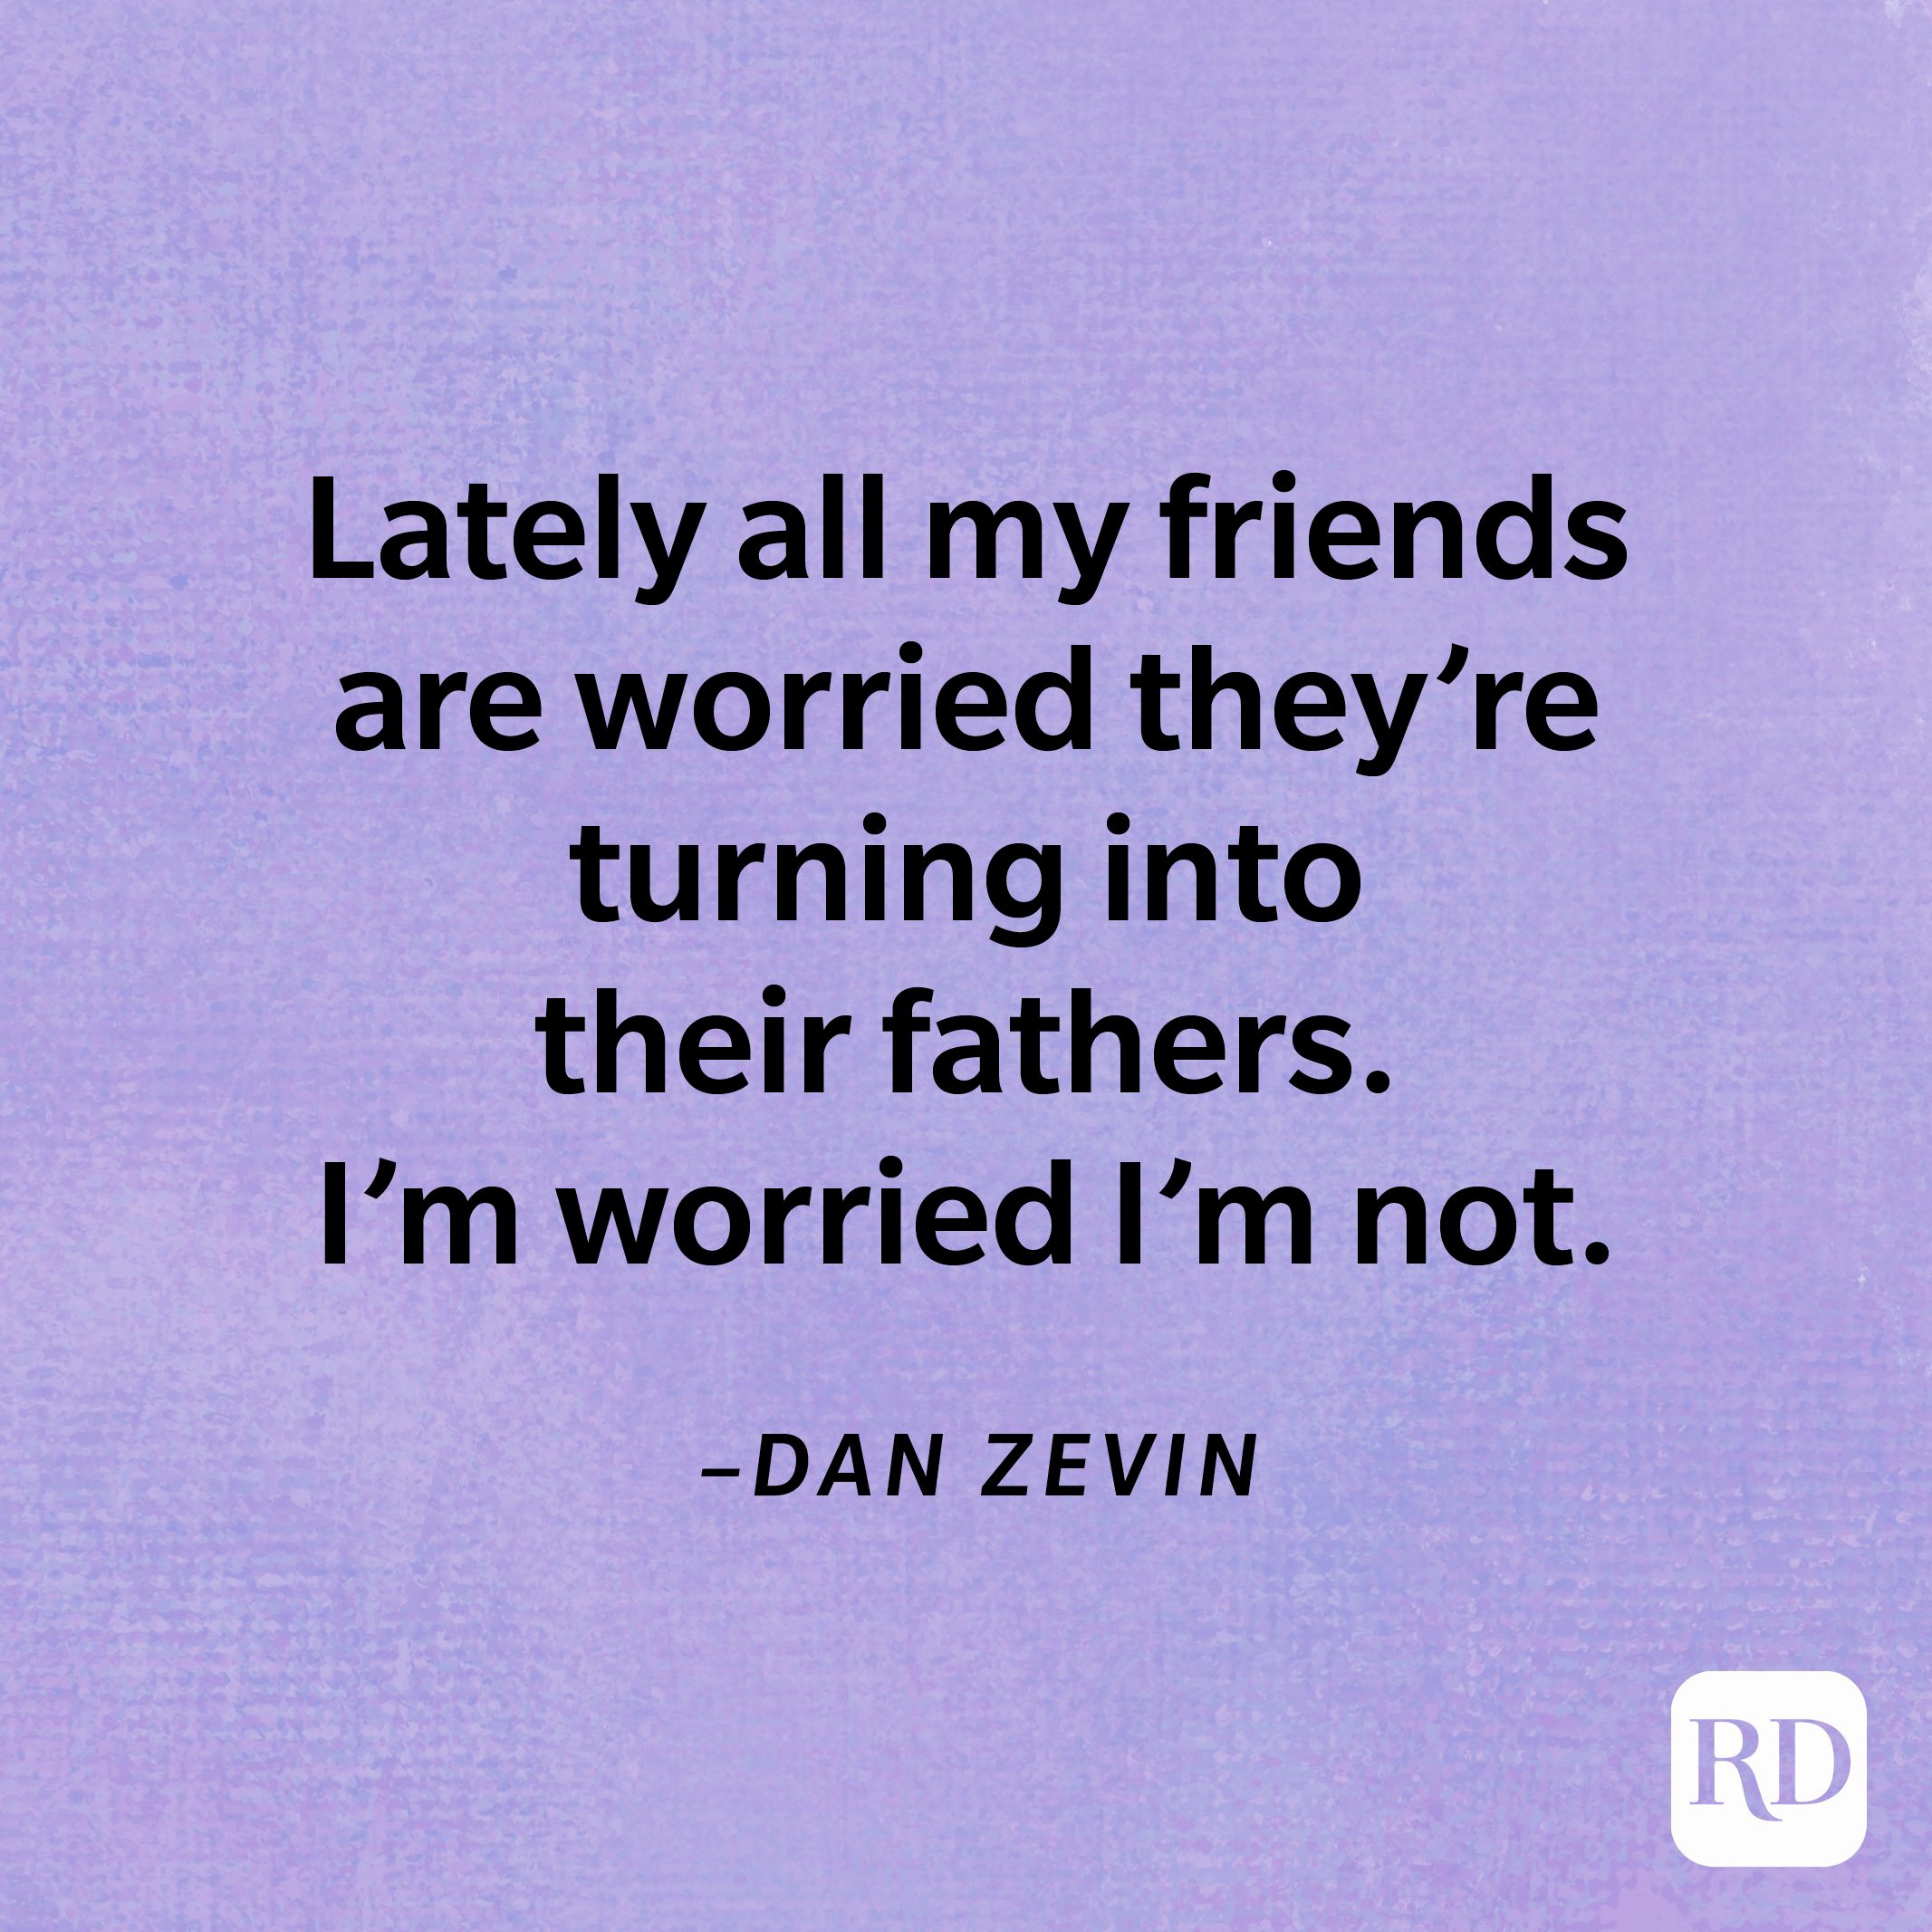 """""""Lately all my friends are worried they're turning into their fathers. I'm worried I'm not.""""—Dan Zevin"""